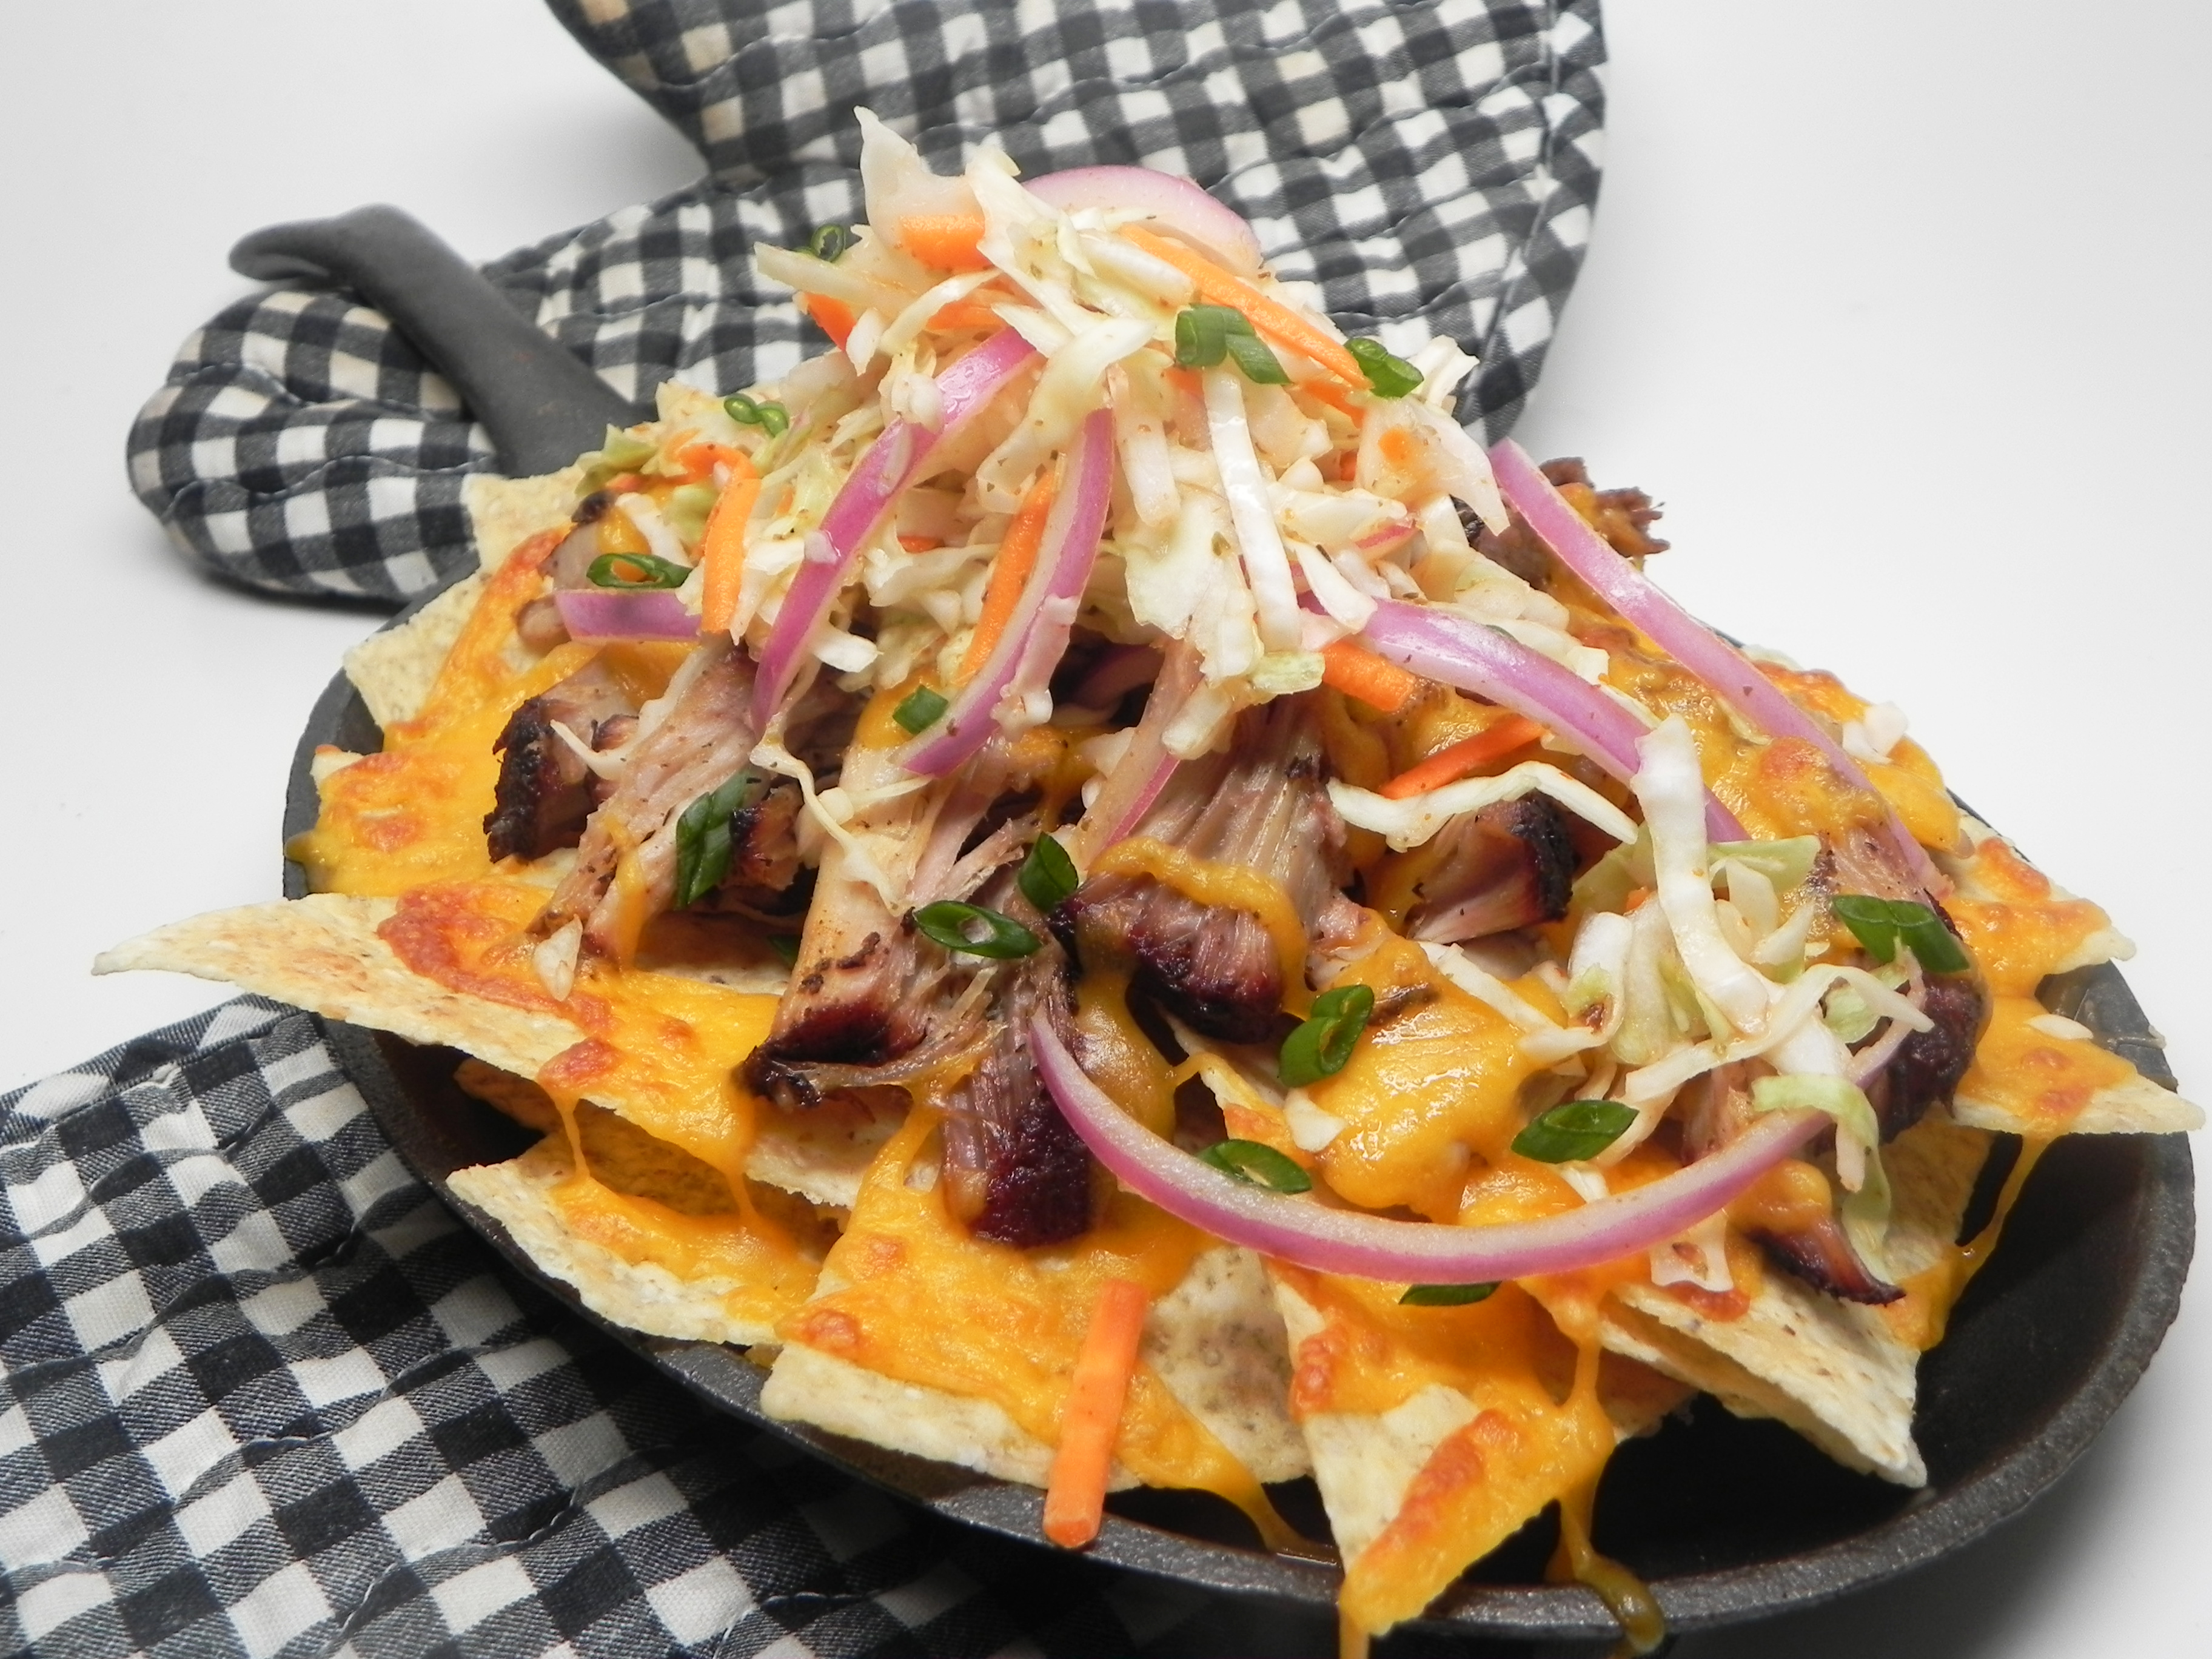 """""""Step up your nacho game this game day by turning leftover pulled pork into a sheet-full of goodness no one will be able to resist,"""" says Soup Loving Nicole. """"Garnish with pickled jalapeno slices, if desired."""""""